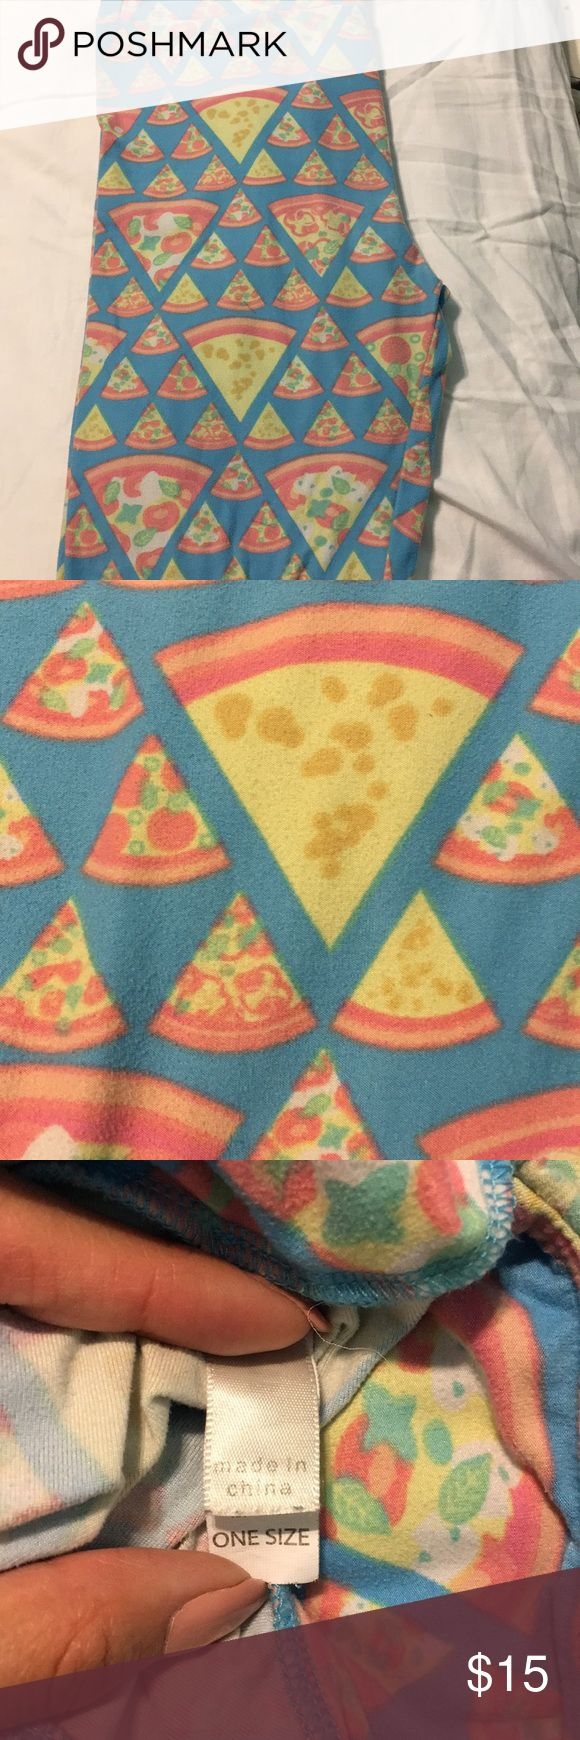 Lularoe pizza leggings pizza leggings LuLaRoe Pants Leggings